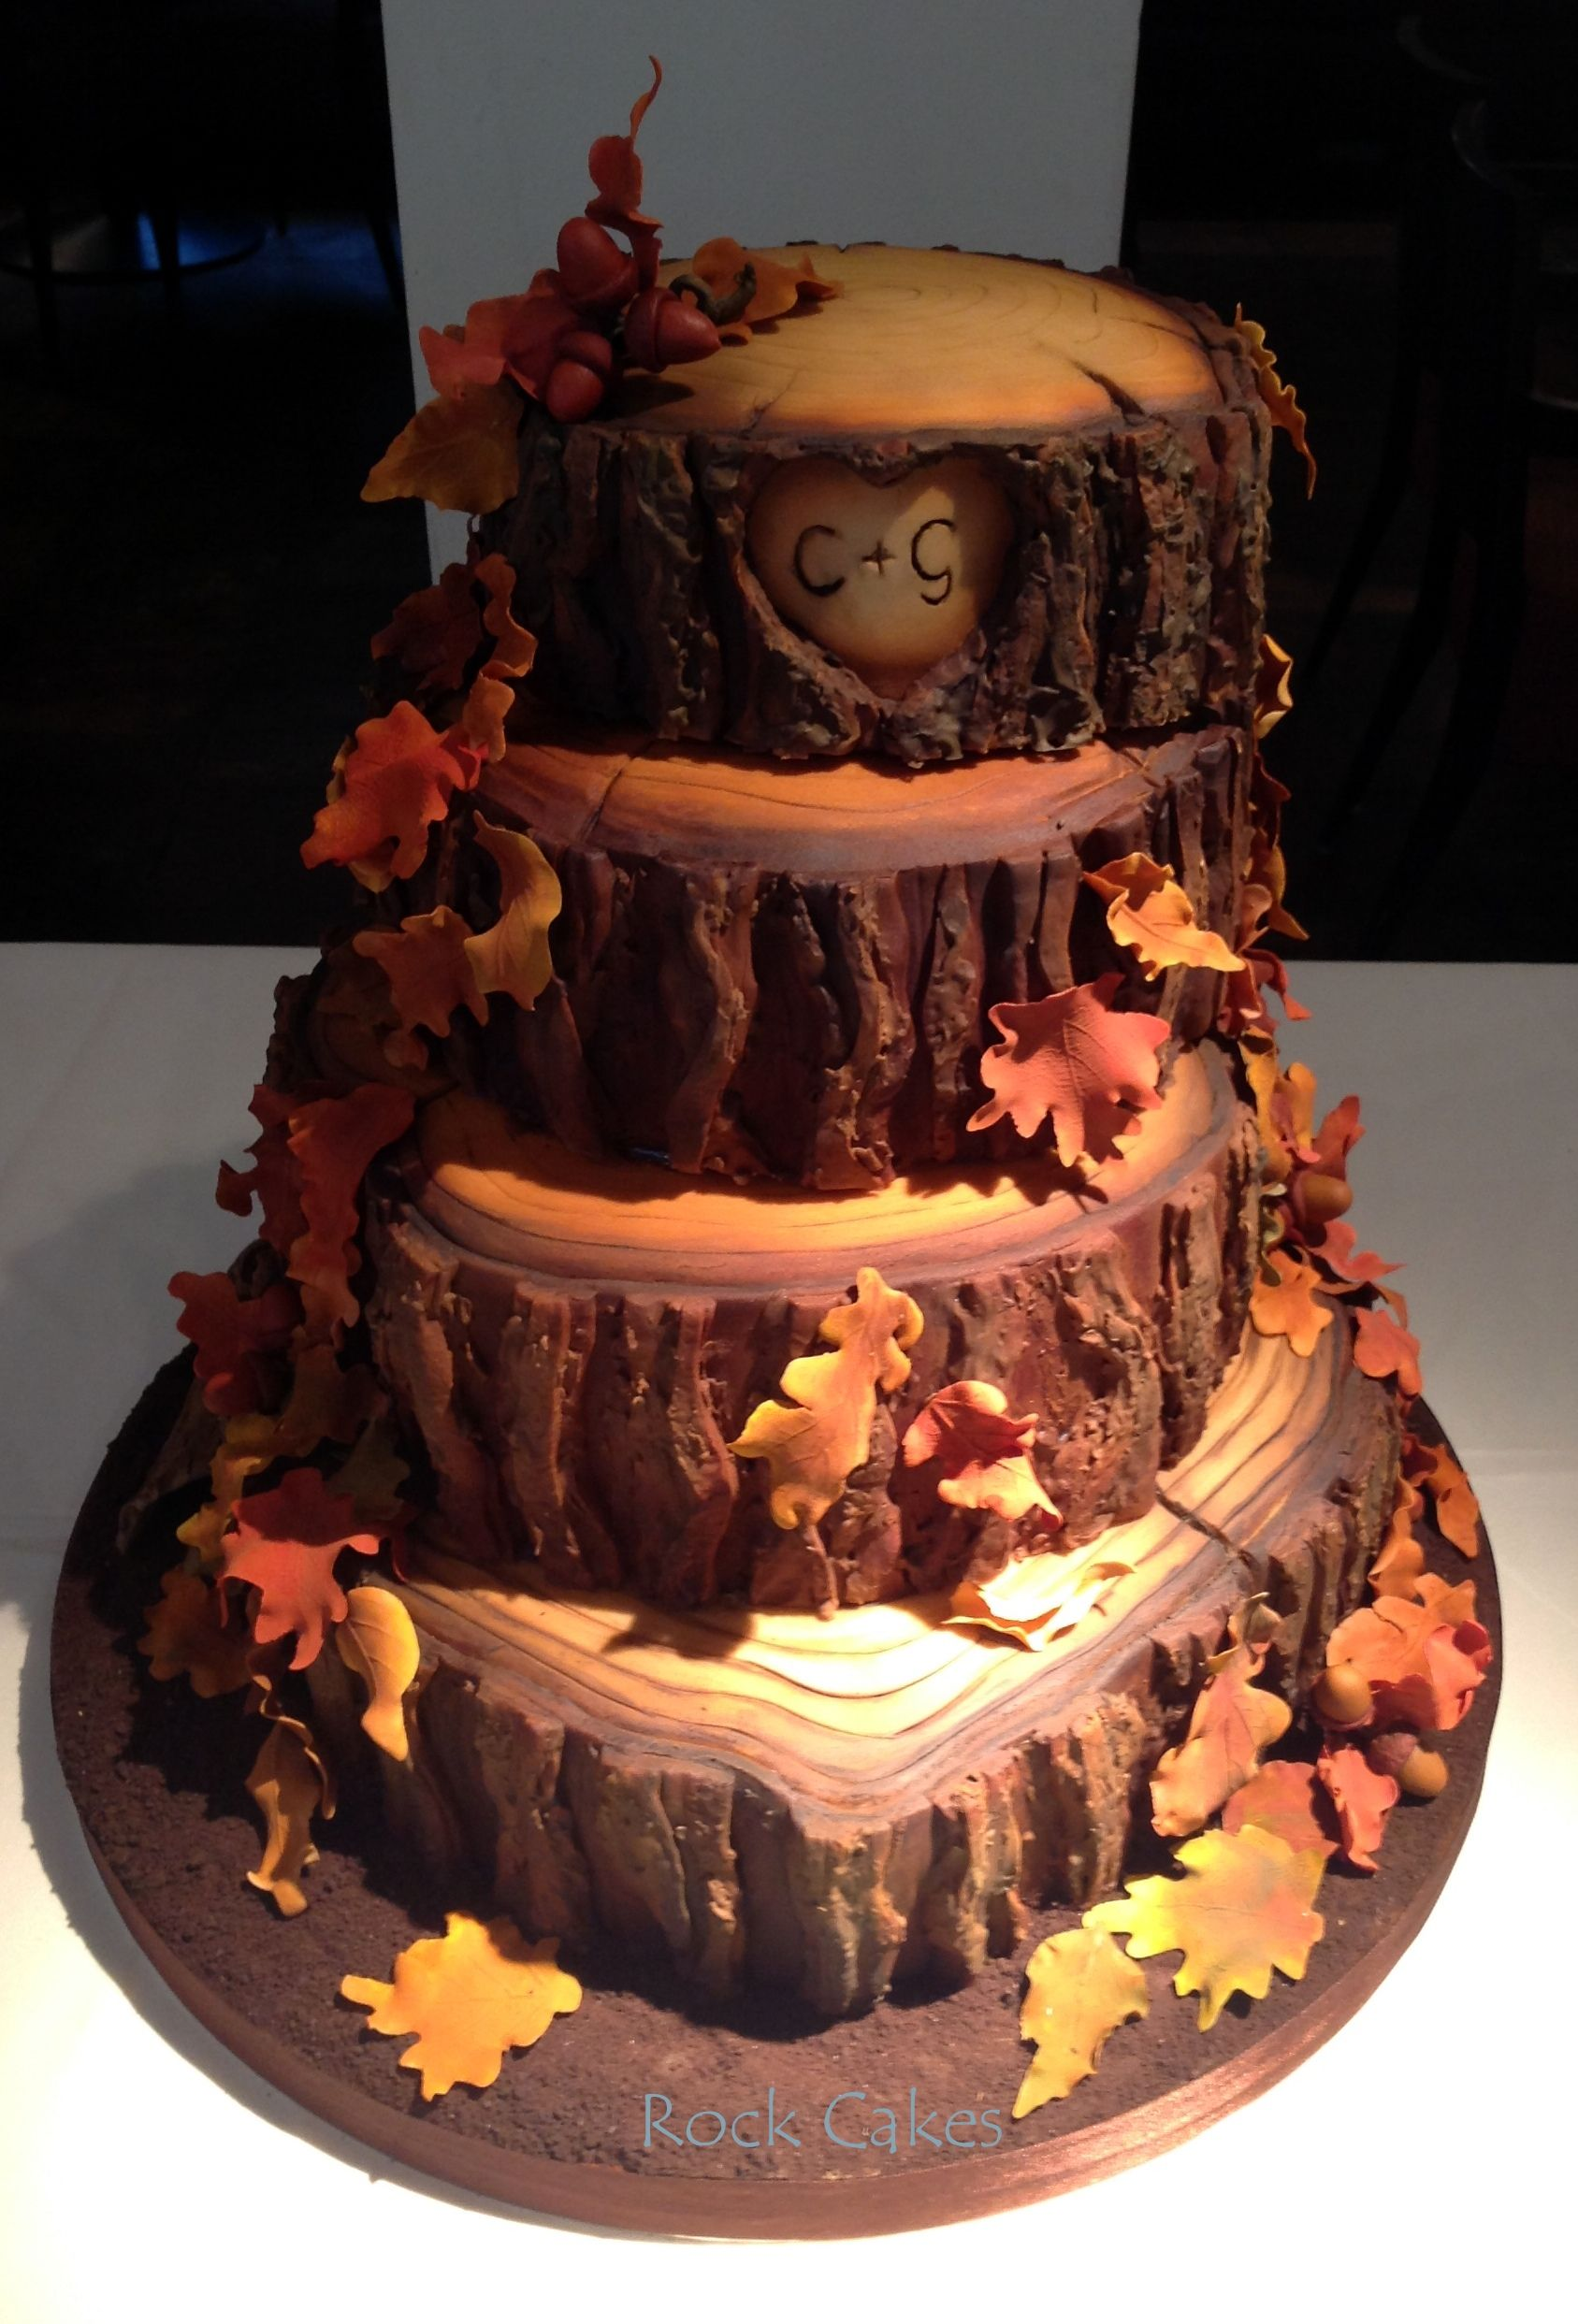 Brilliant Idea For That Perfect Fall Wedding Initials Carved In A Tree Stump Cake